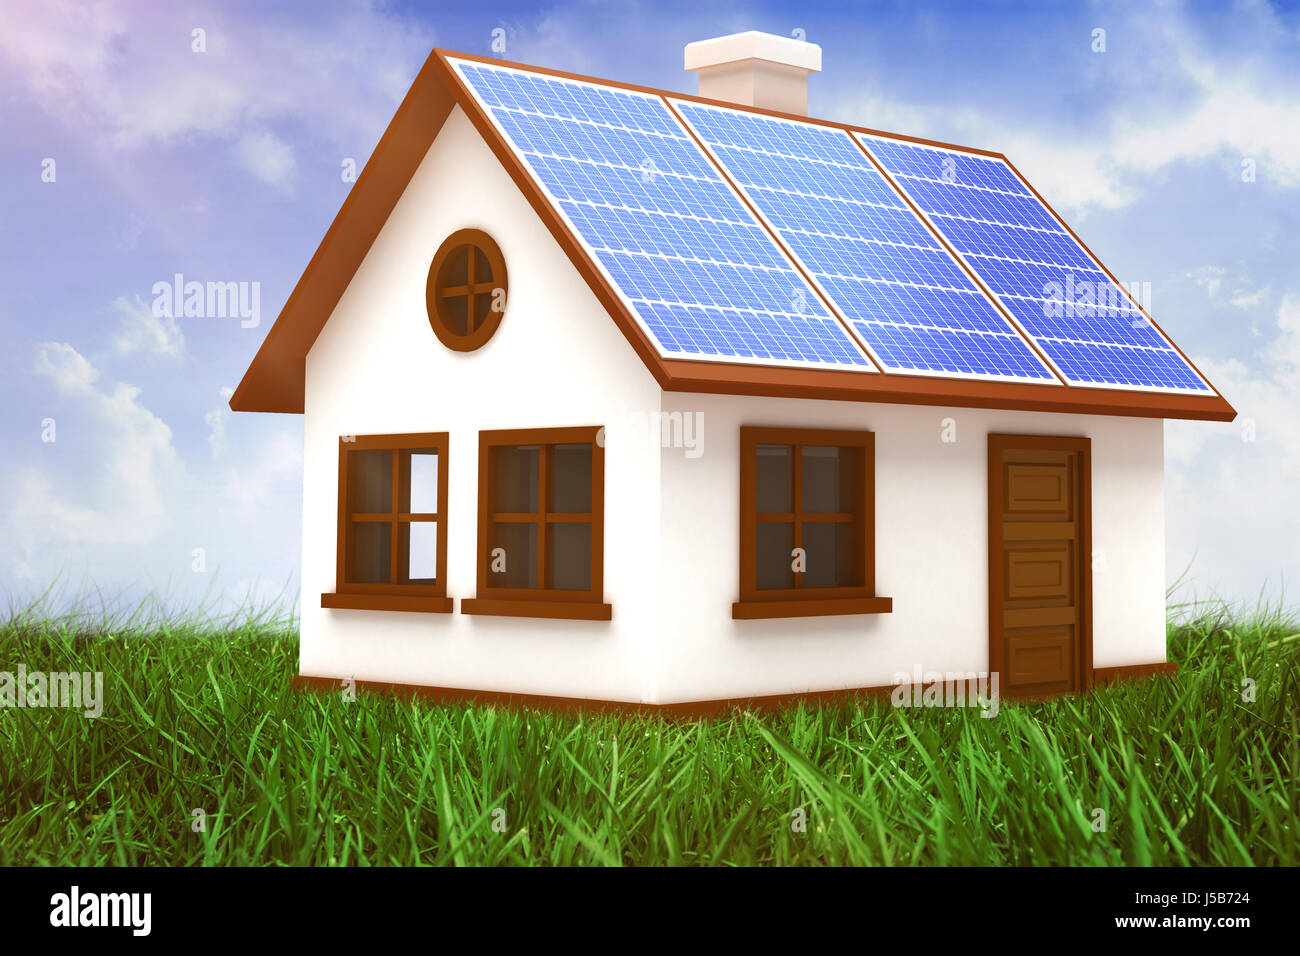 Digitally composite image of 3d house with solar panels against field of grass under blue sky - Stock Image